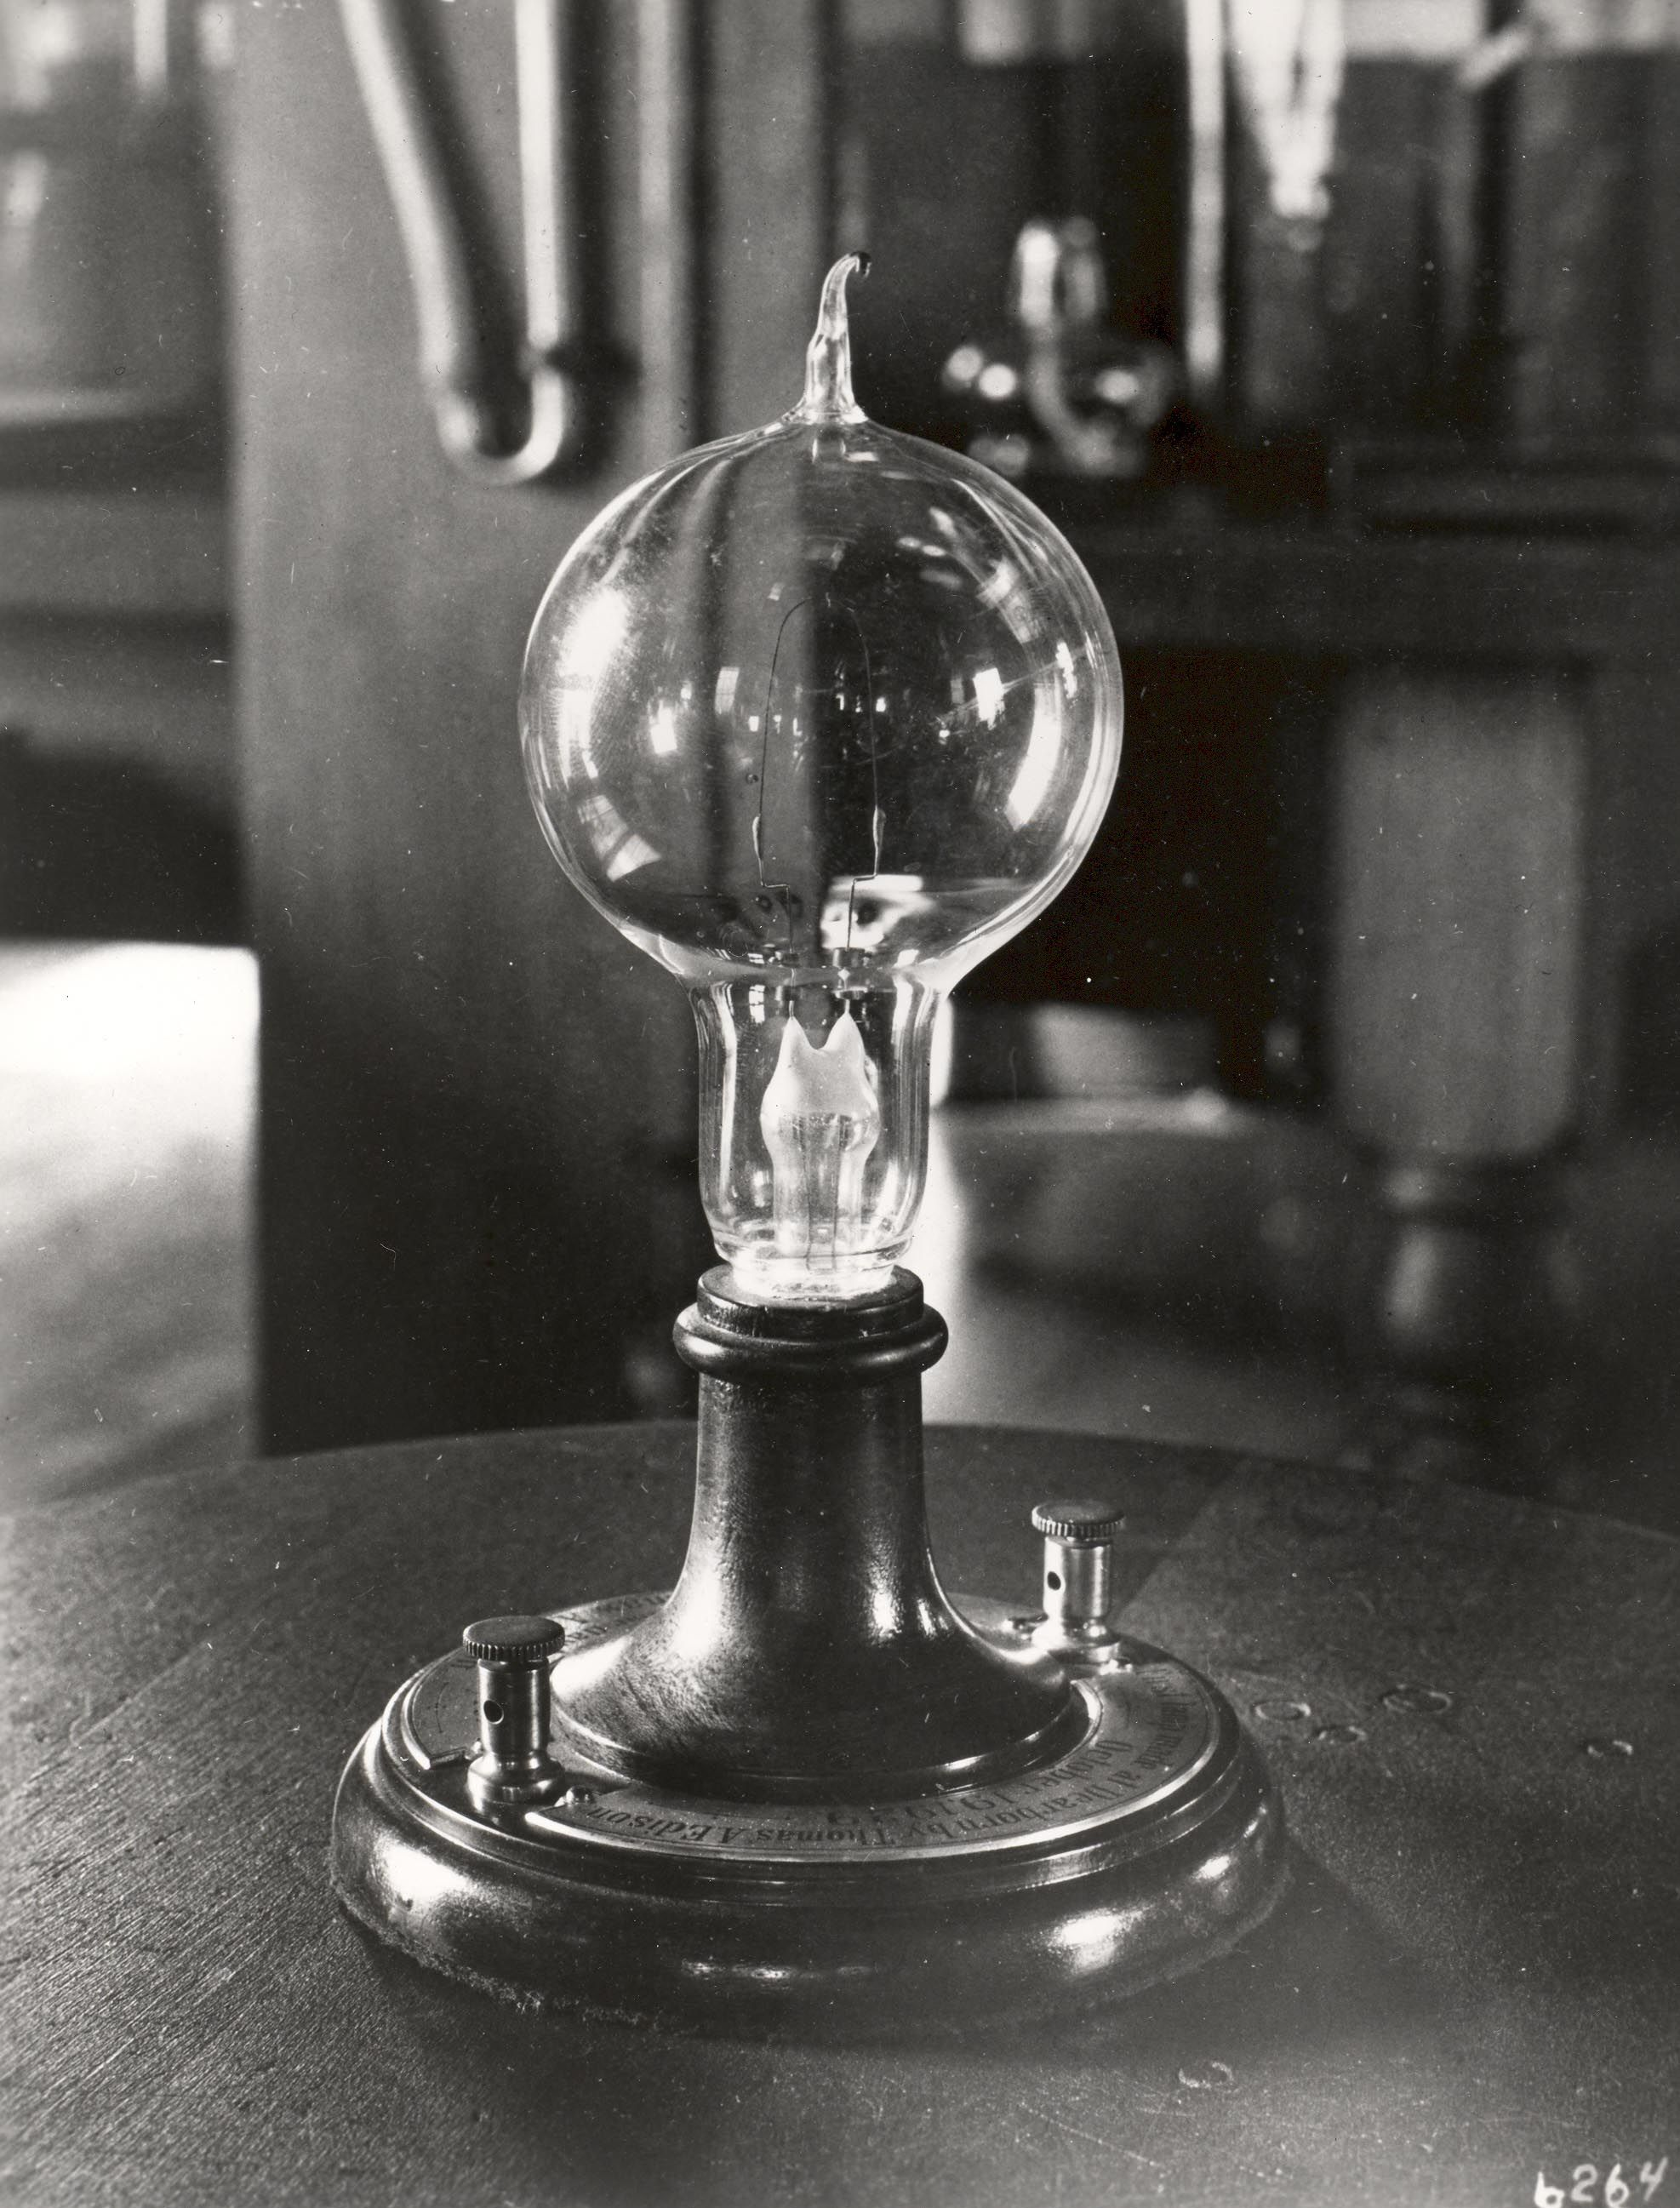 corning invented the glass bulb for thomas edison 39 s first light bulb originally each bulb was. Black Bedroom Furniture Sets. Home Design Ideas